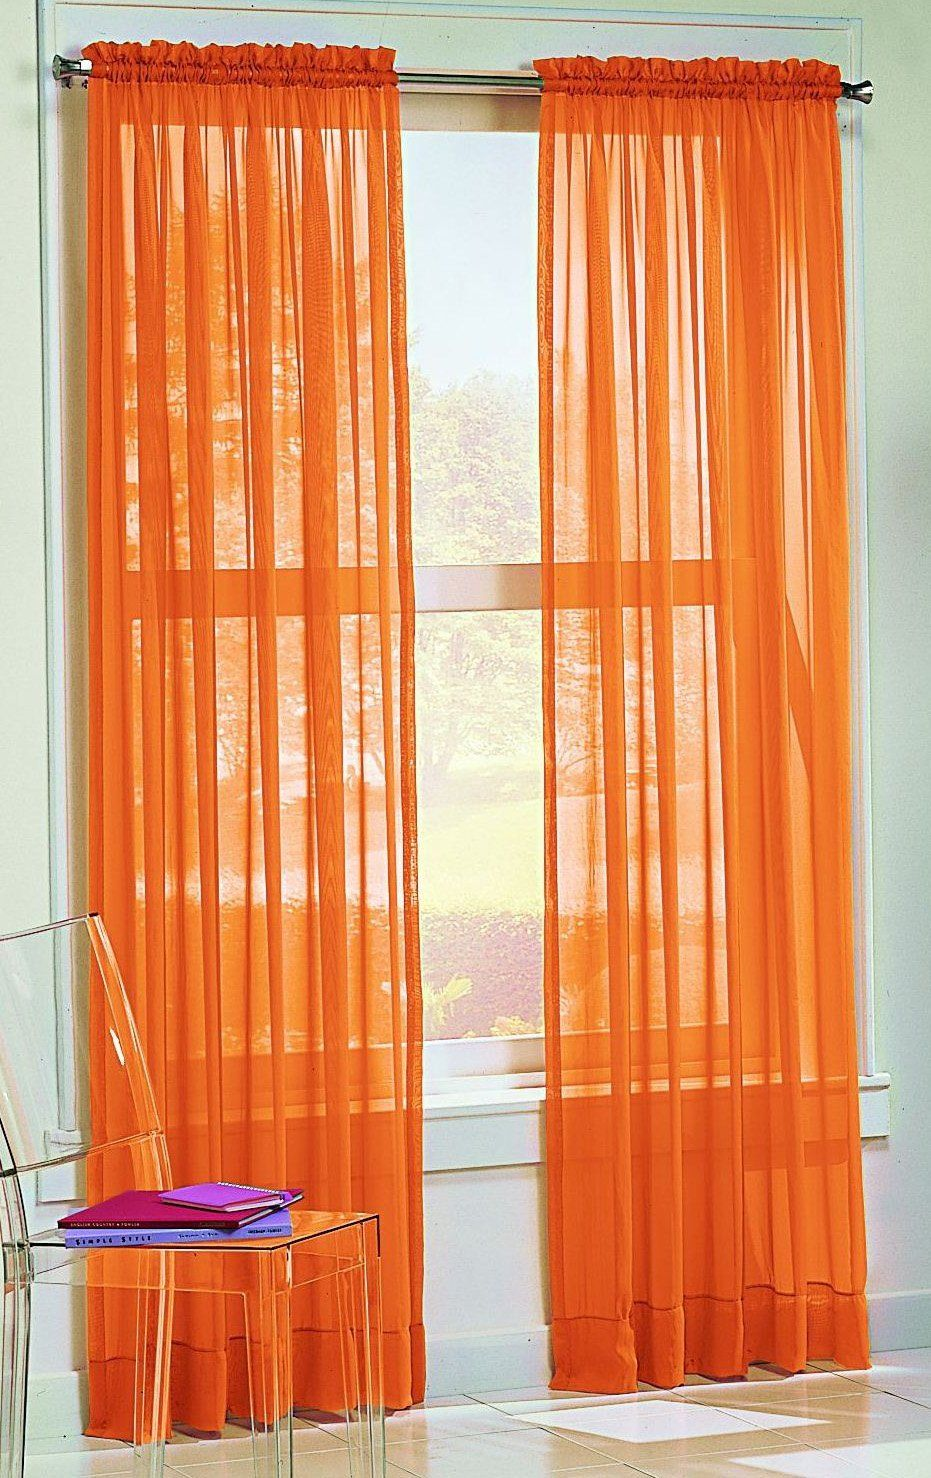 fashionable sheer curtains create warm and cozy accent | Home ...